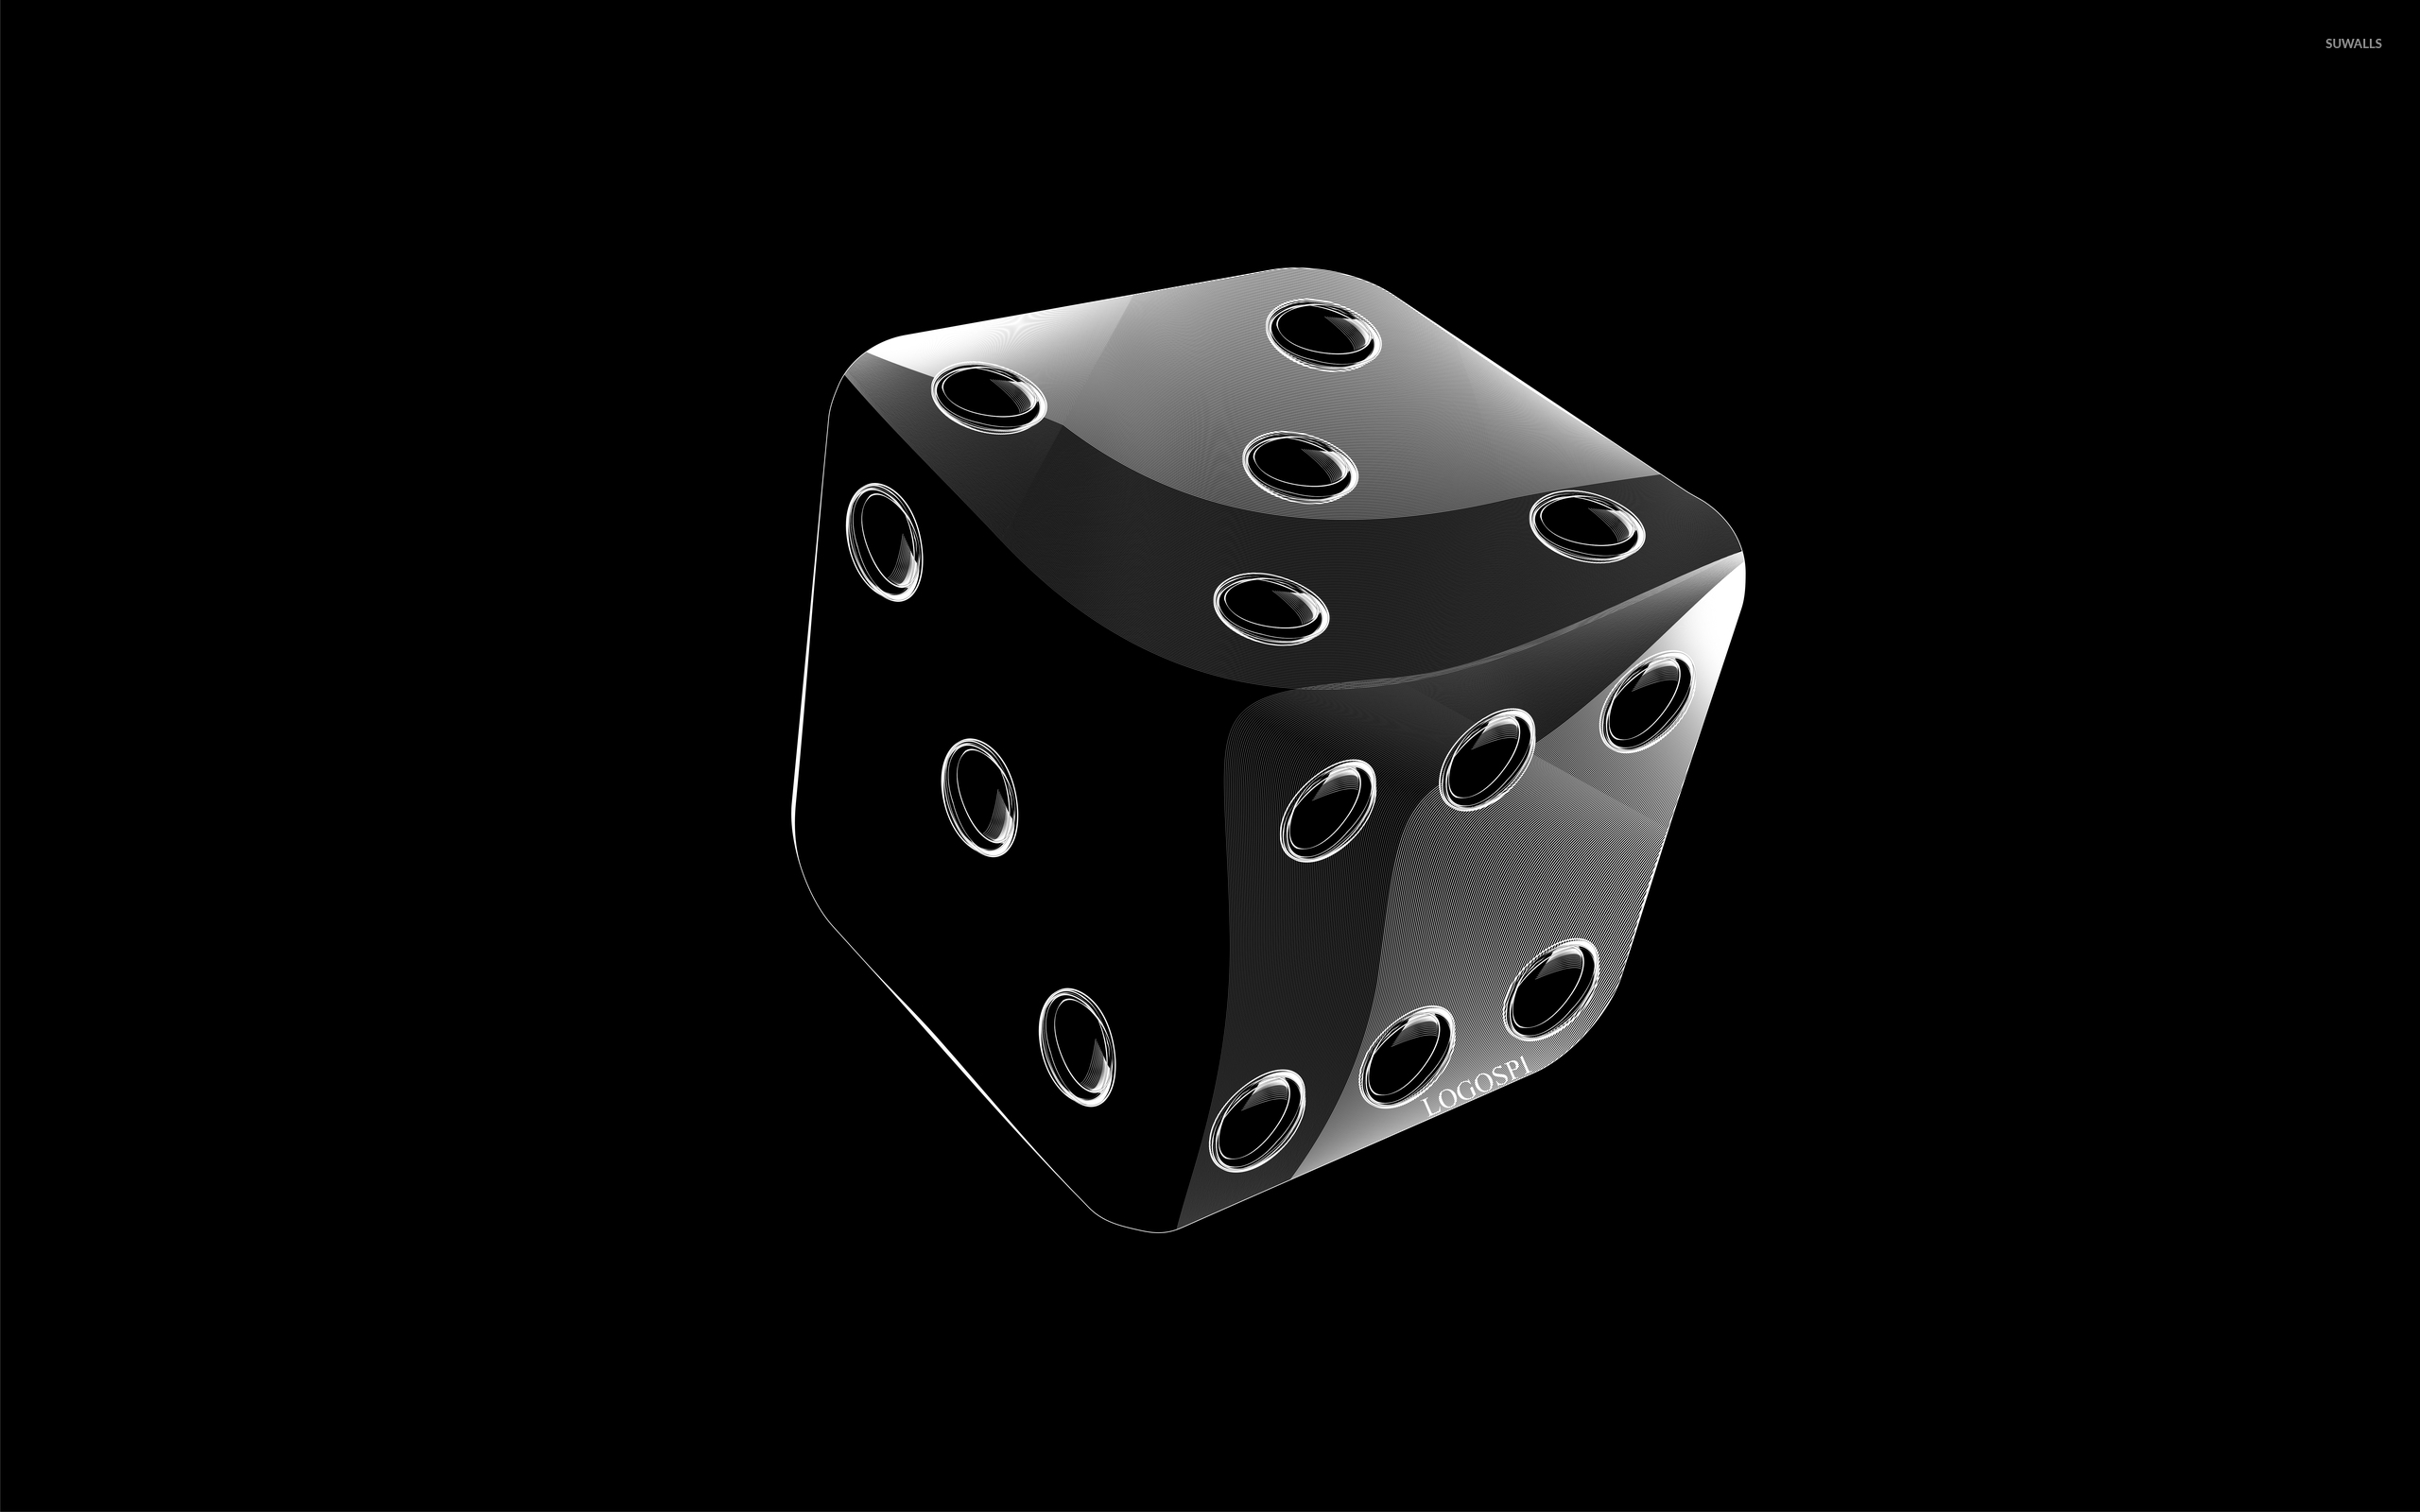 Dice 4 Wallpaper 3d Wallpapers 12209